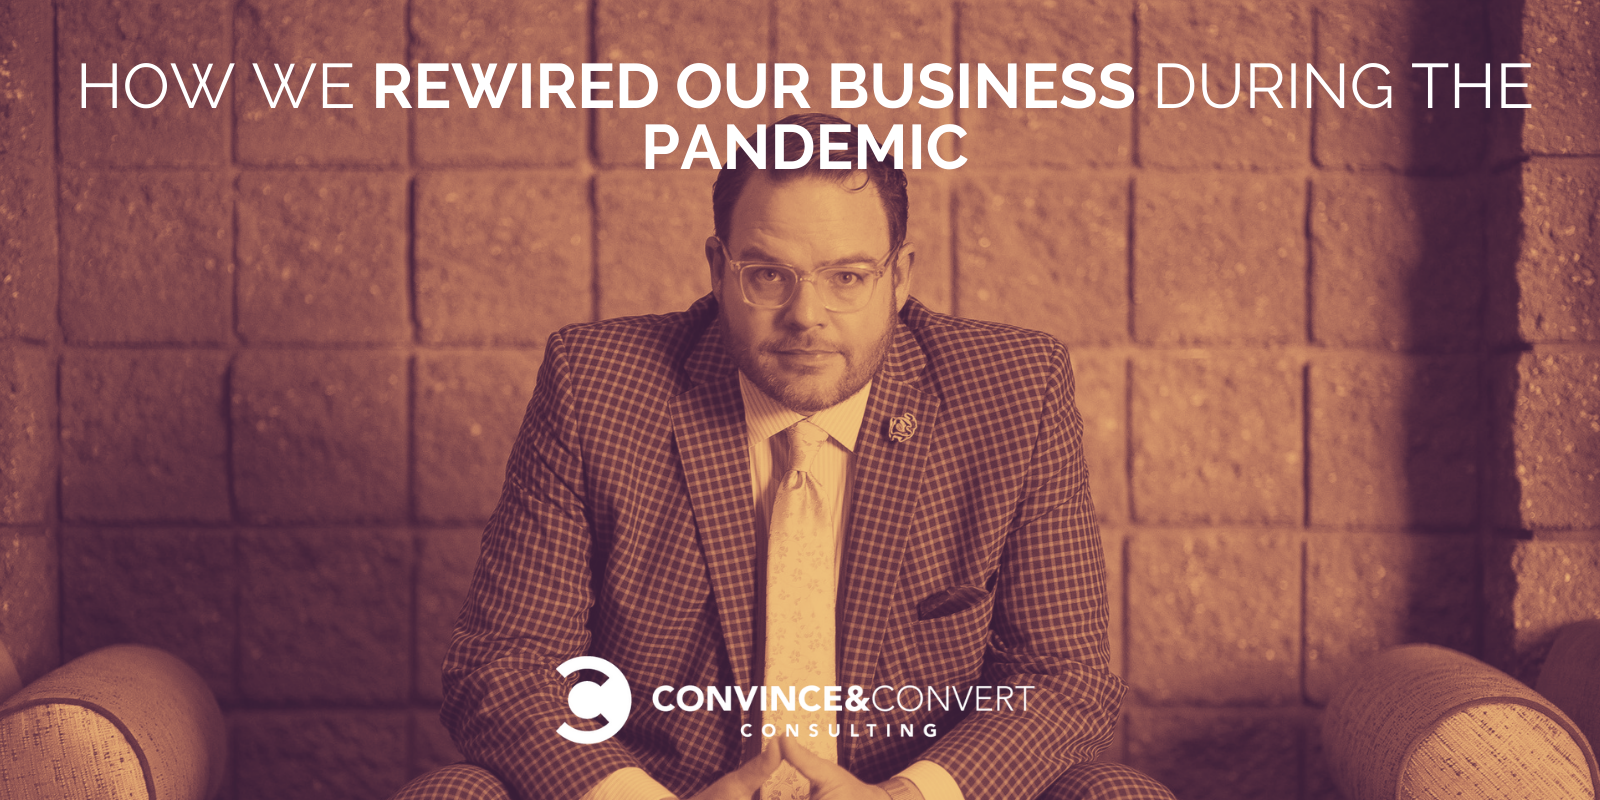 How We Successfully Rewired Our Business During the Pandemic